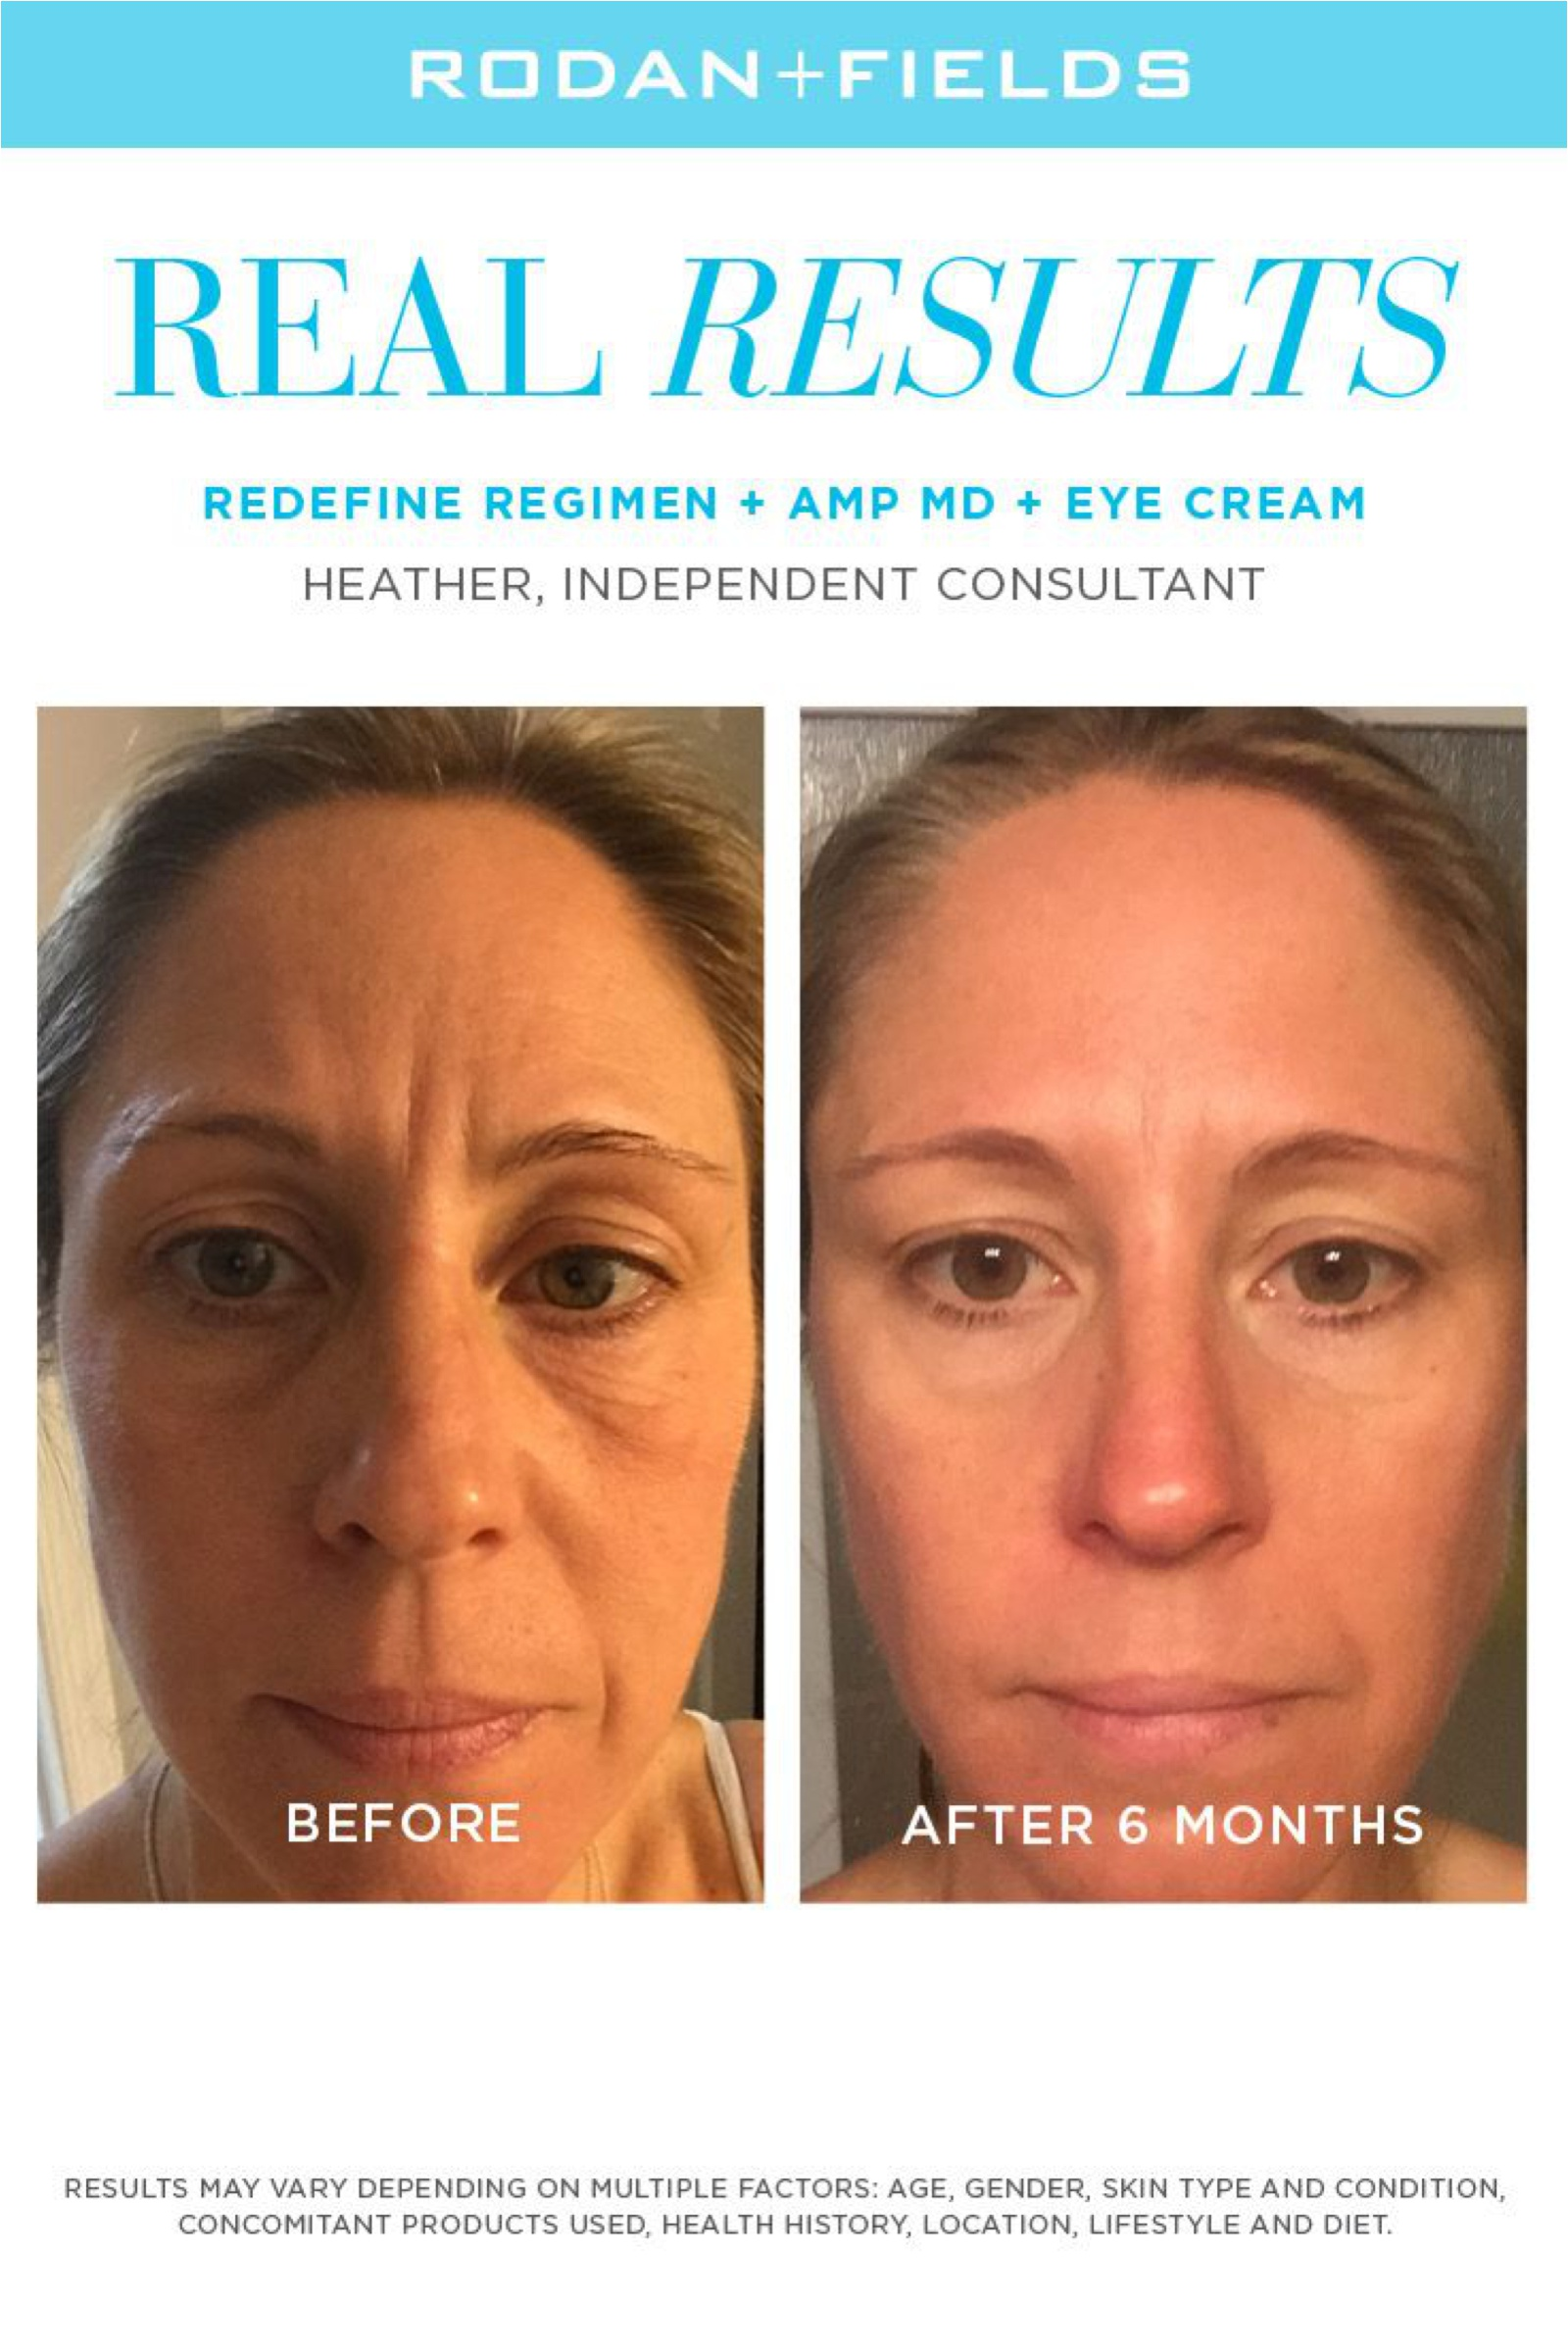 Redefine Line - Click here to try our anti-aging line!